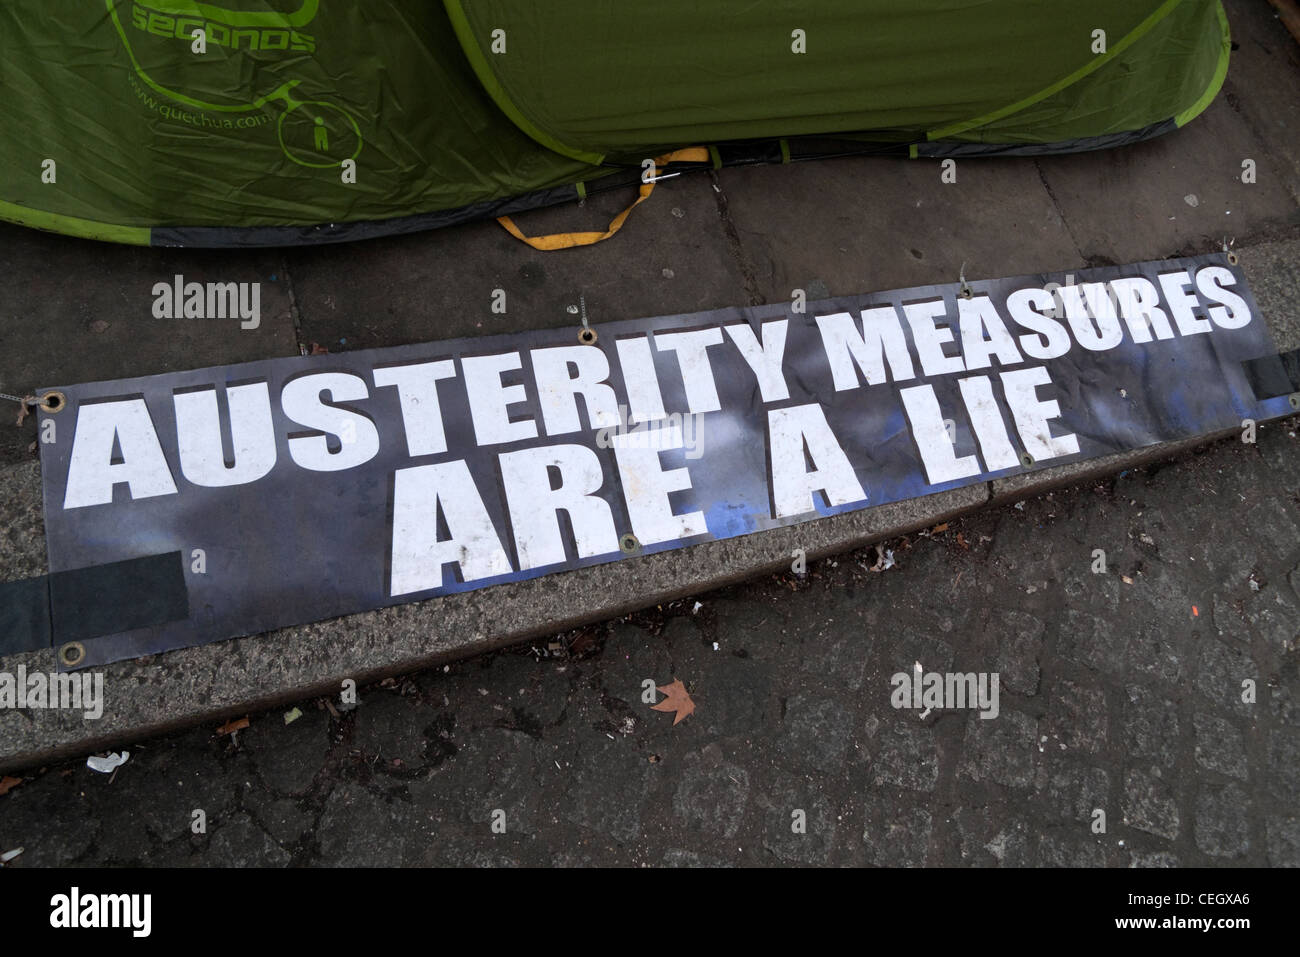 A sign declaring 'Austerity Measures Are A Lie' by protesters protestors on the pavement at the St. Paul's - Stock Image